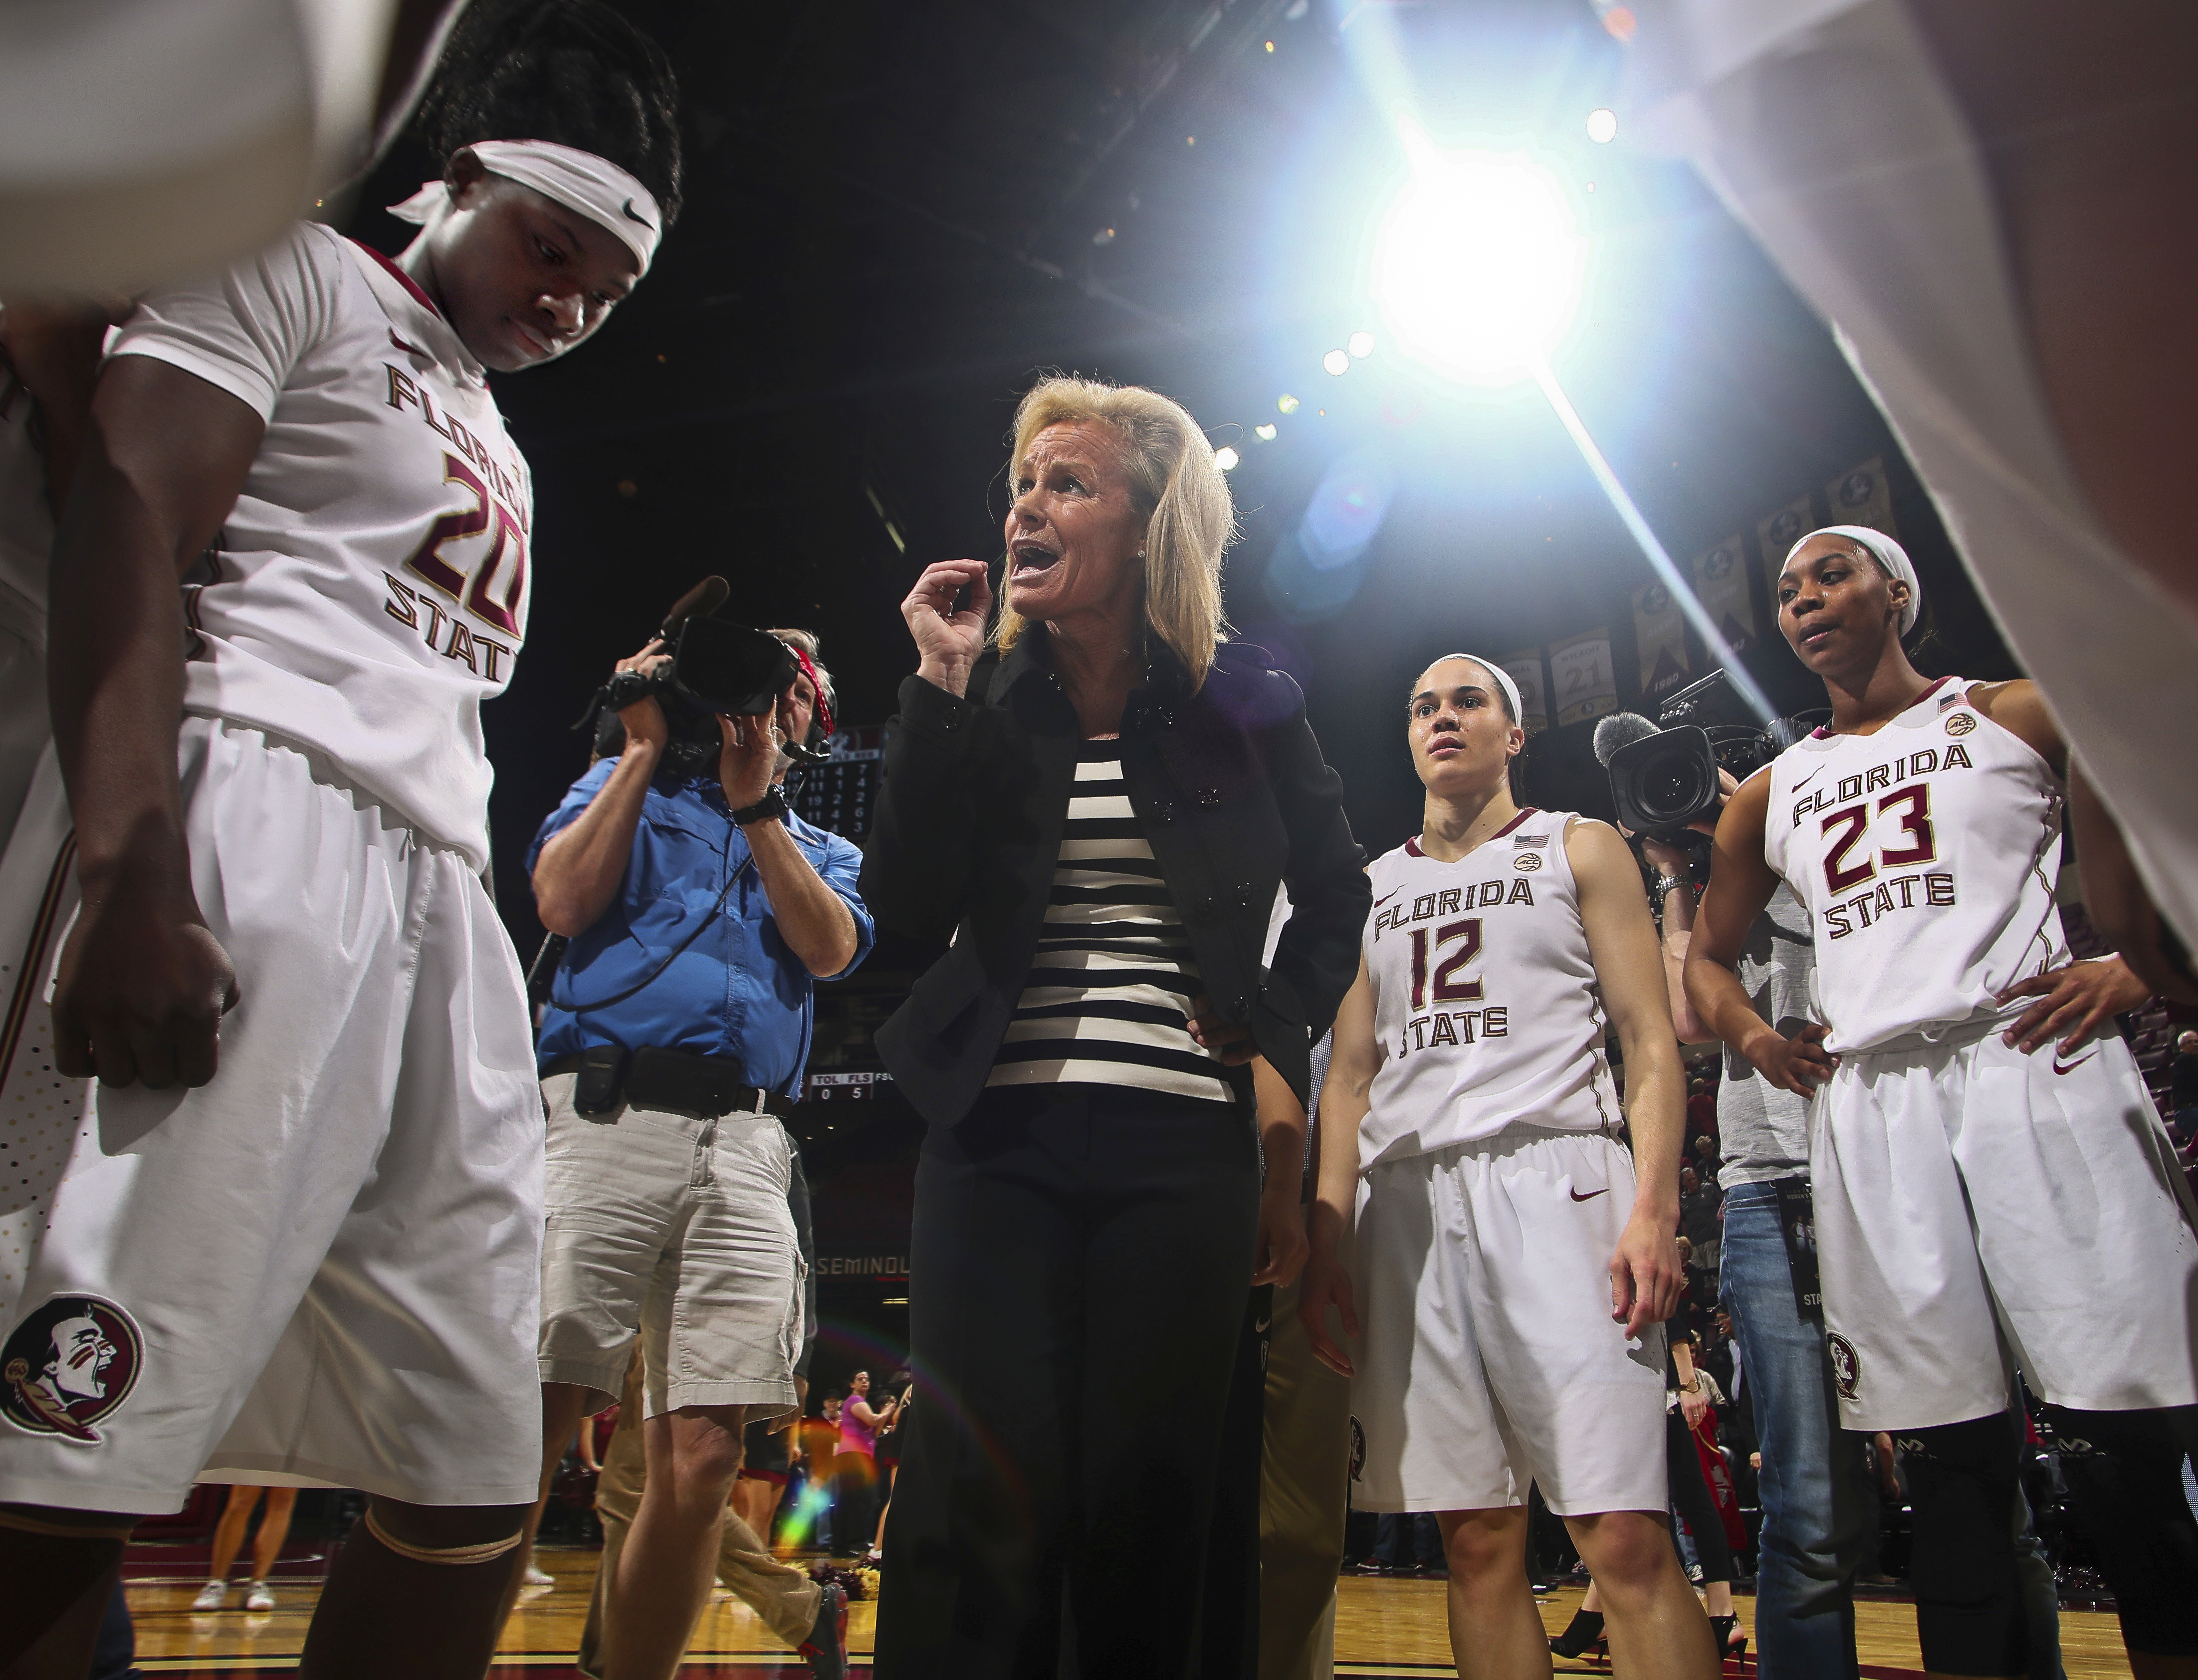 FILE - In this Feb. 6, 2017, file photo, Florida State coach Sue Semrau talks to her players, including forward Shakayla Thomas (20), guard Brittany Brown (12) and Ivey Slaughter (23) after an NCAA college basketball game against Miami in Tallahassee, Fla